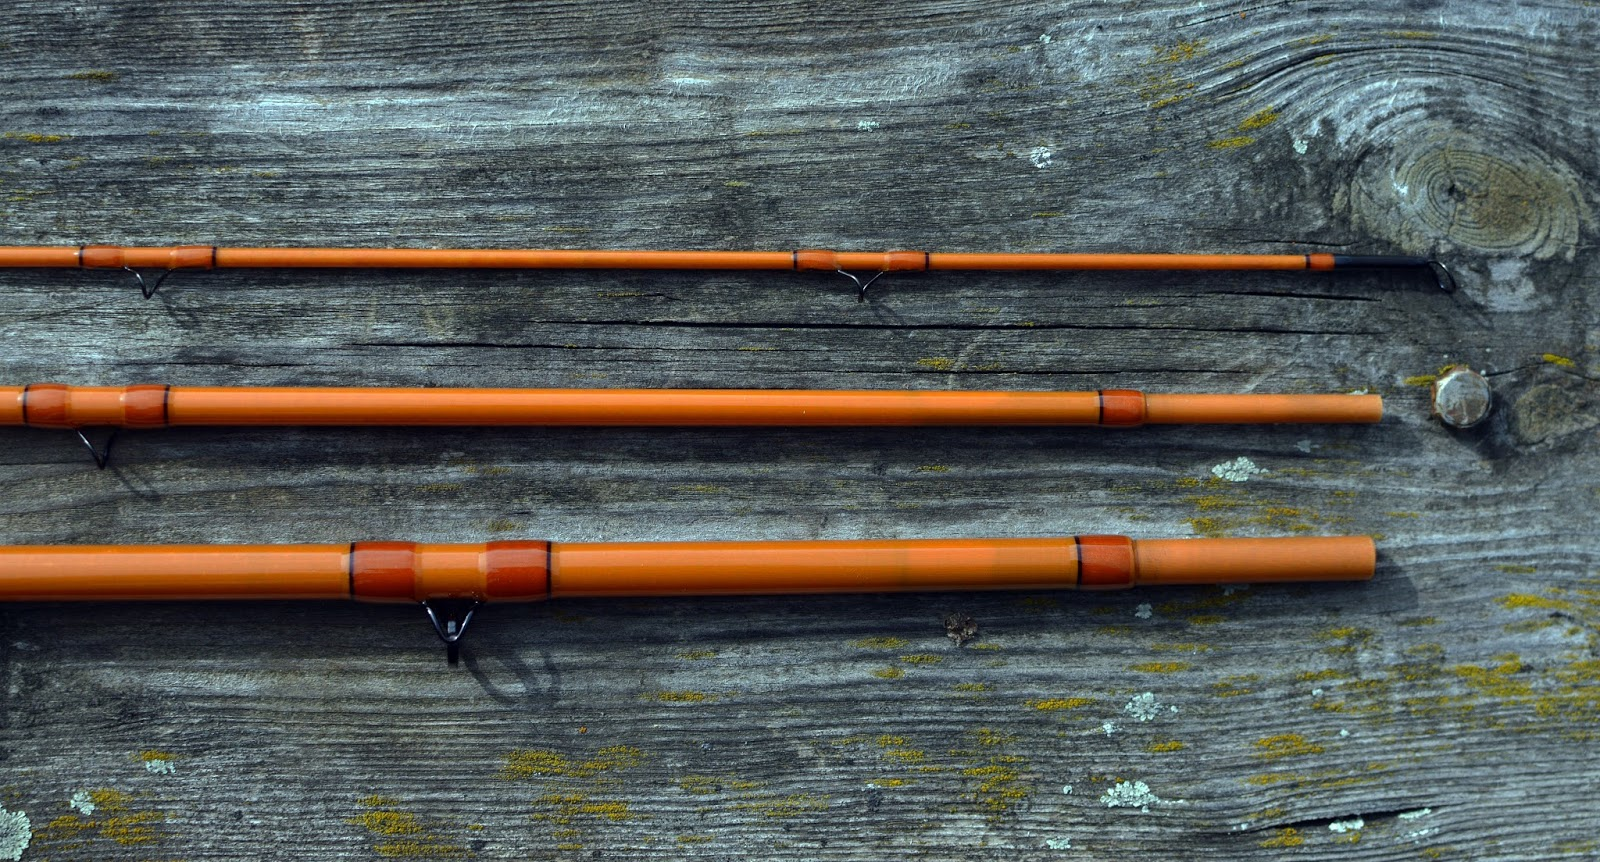 Handcrafted graphite and fiberglass fly rods lamiglas 8 39 5wt for Lamiglas fishing rods